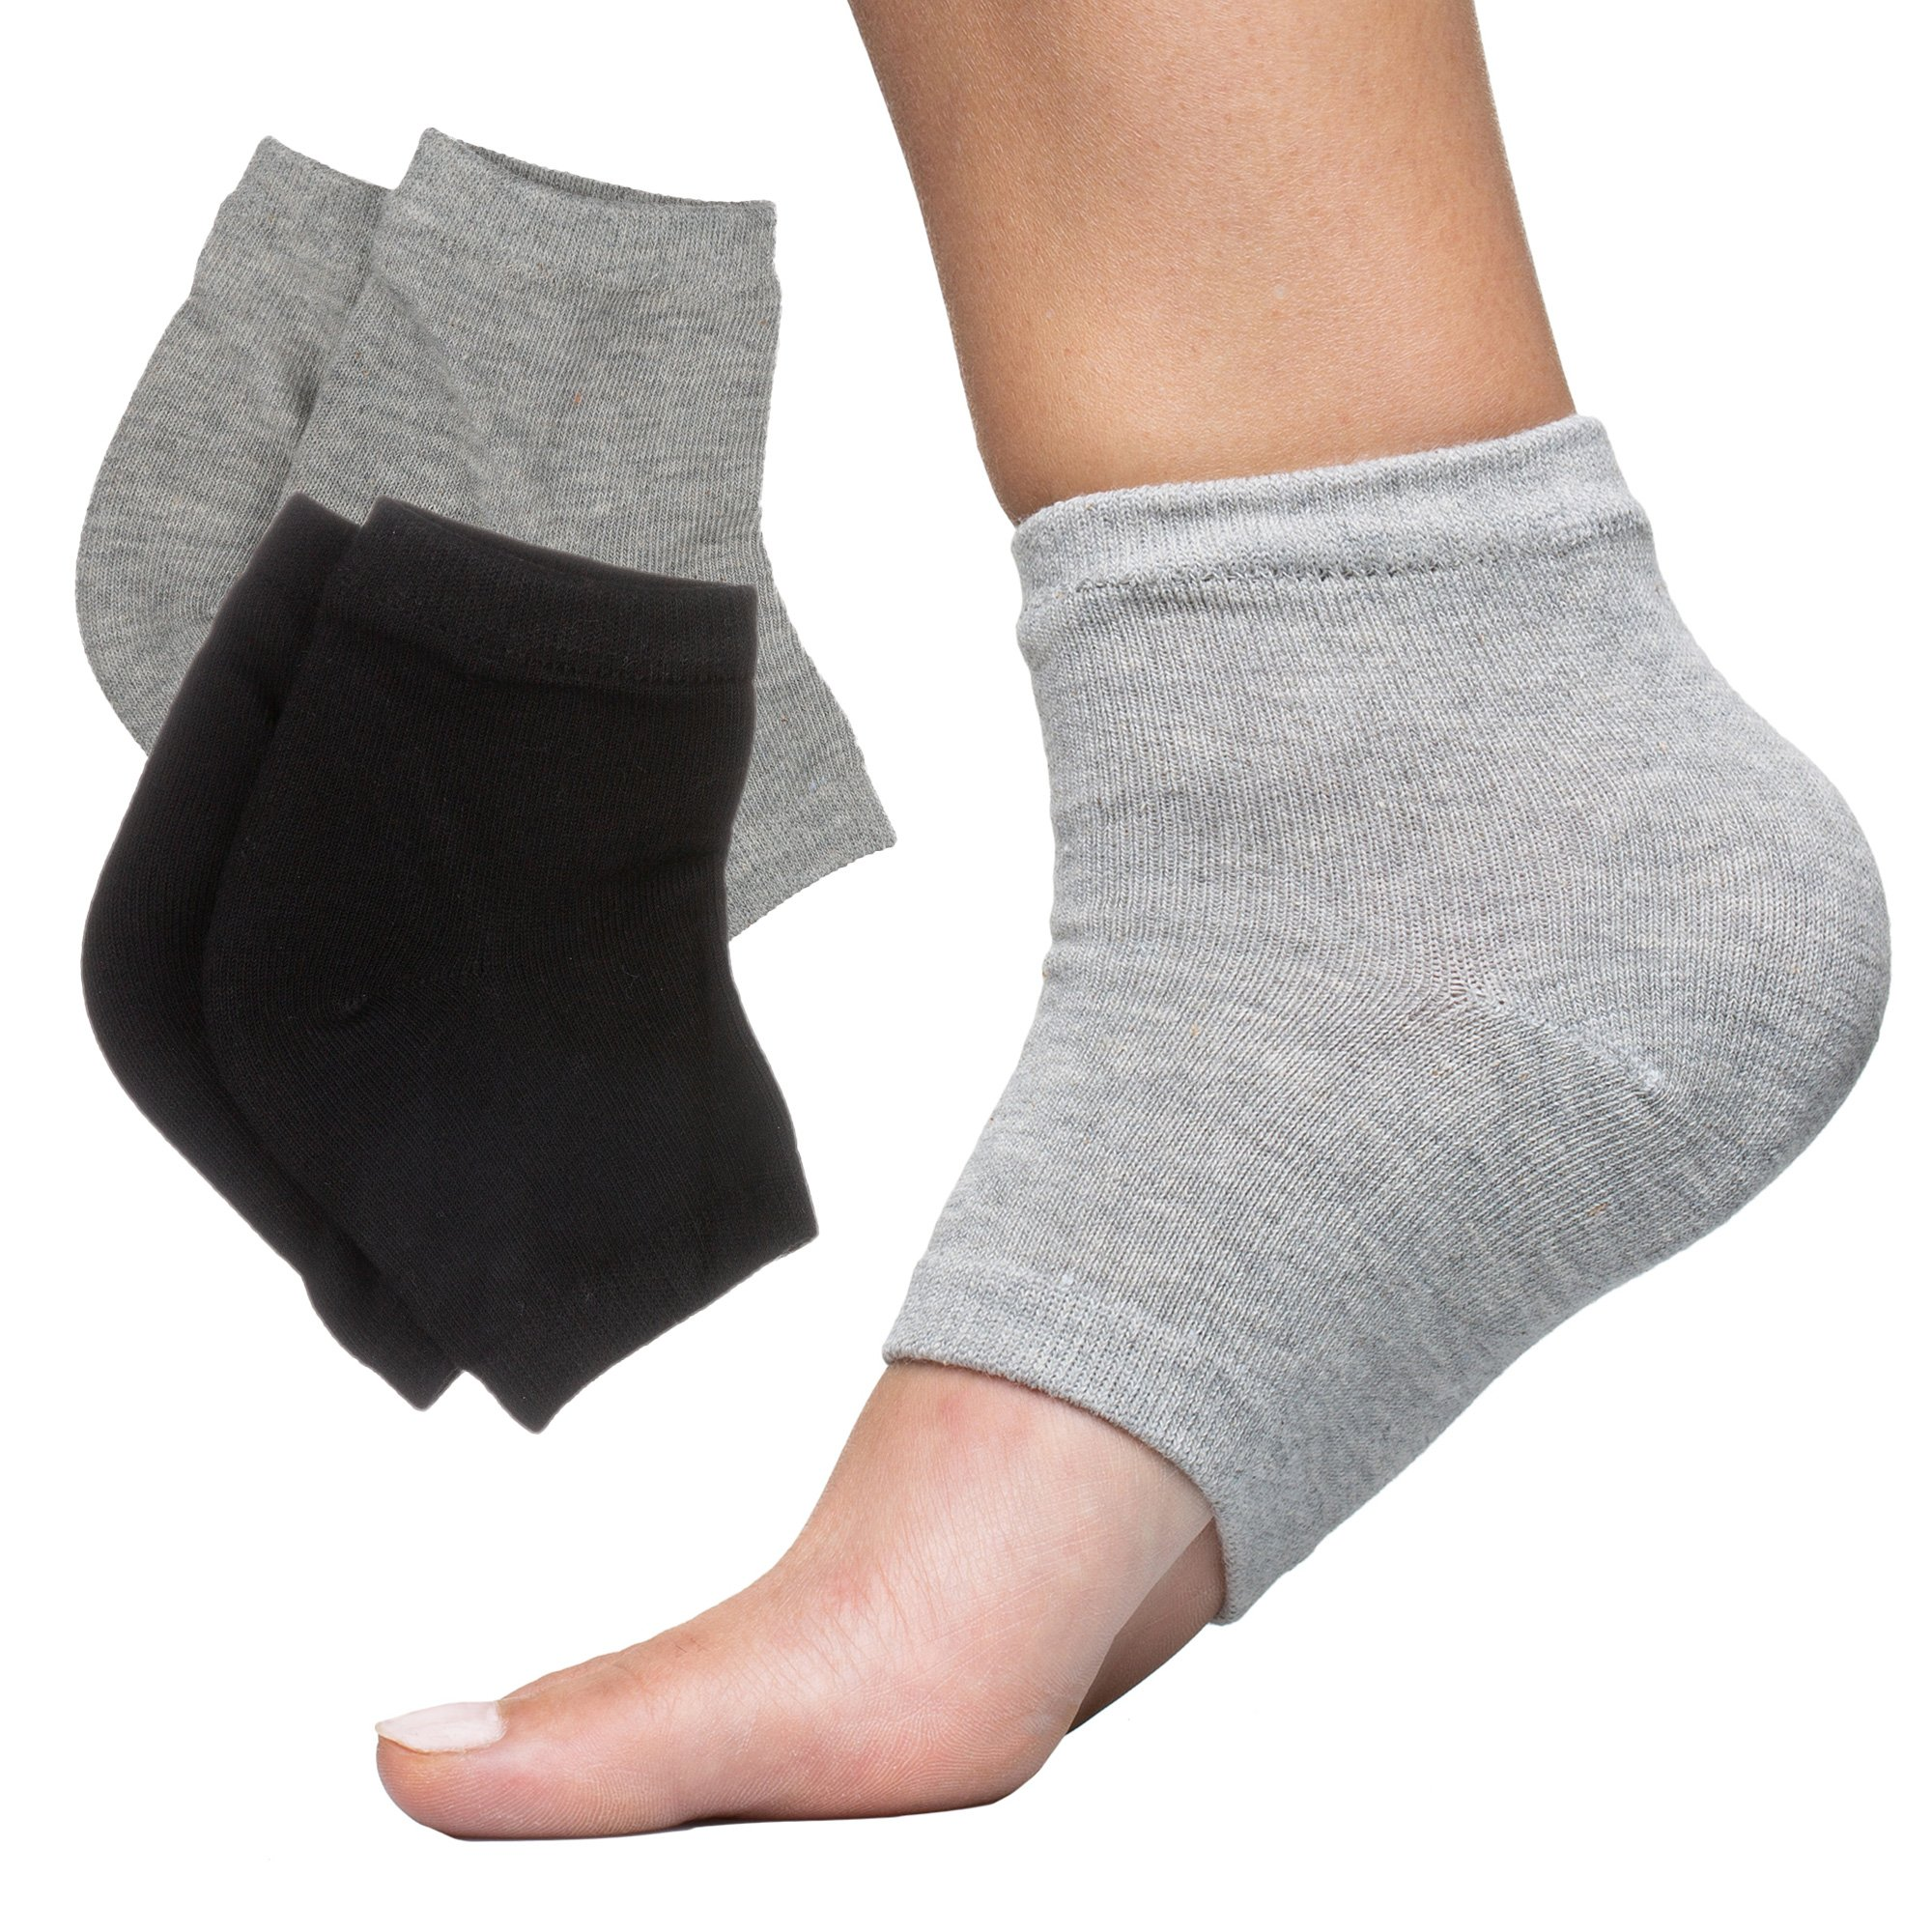 ZenToes Moisturizing Heel Socks with Gel to Heal Dry Cracked Heels (Cotton, Black and Gray)